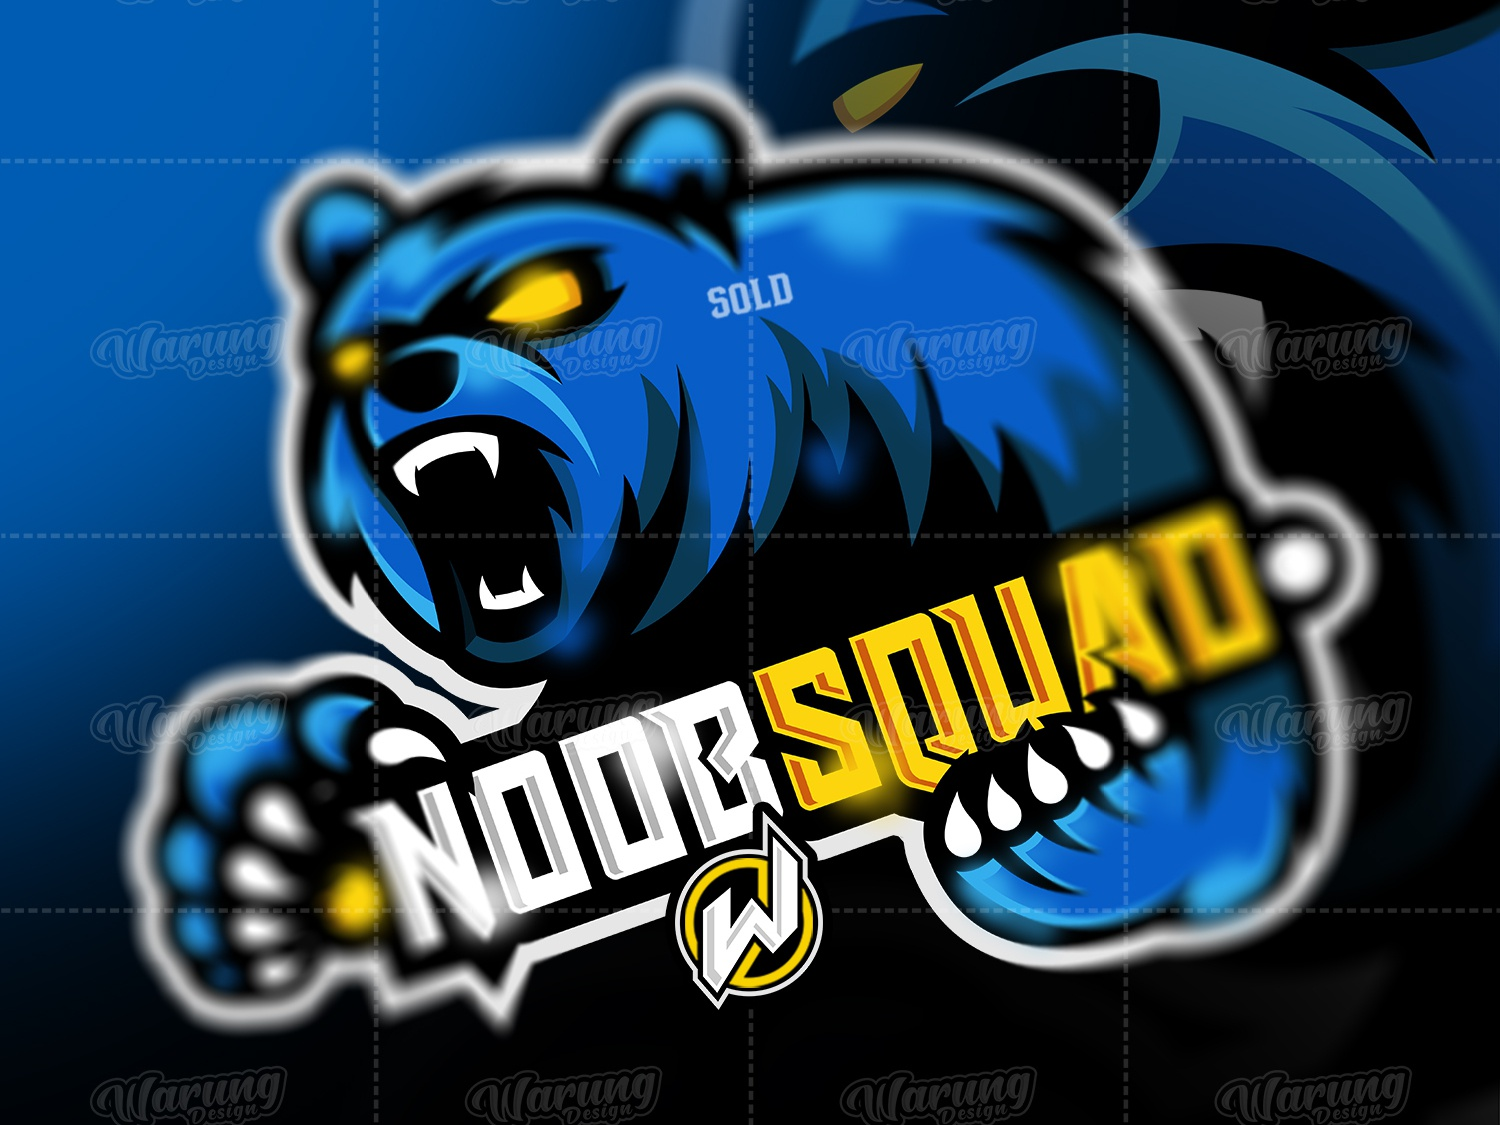 NOOB SQUAD by warungdesign on Dribbble